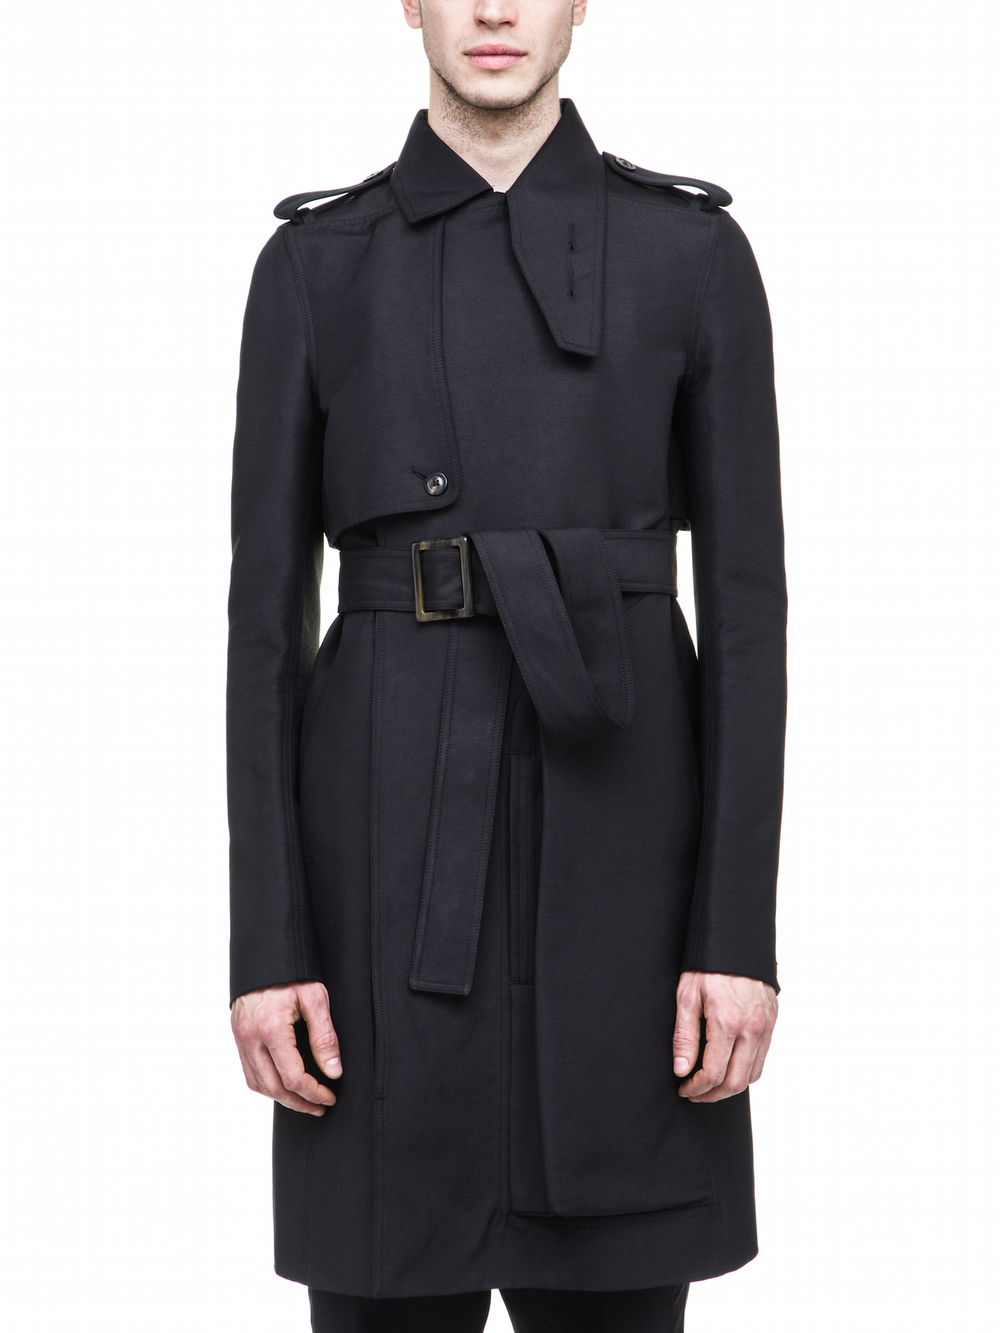 RICK OWENS FALL WINTER CARGO TRENCH IN BLACK